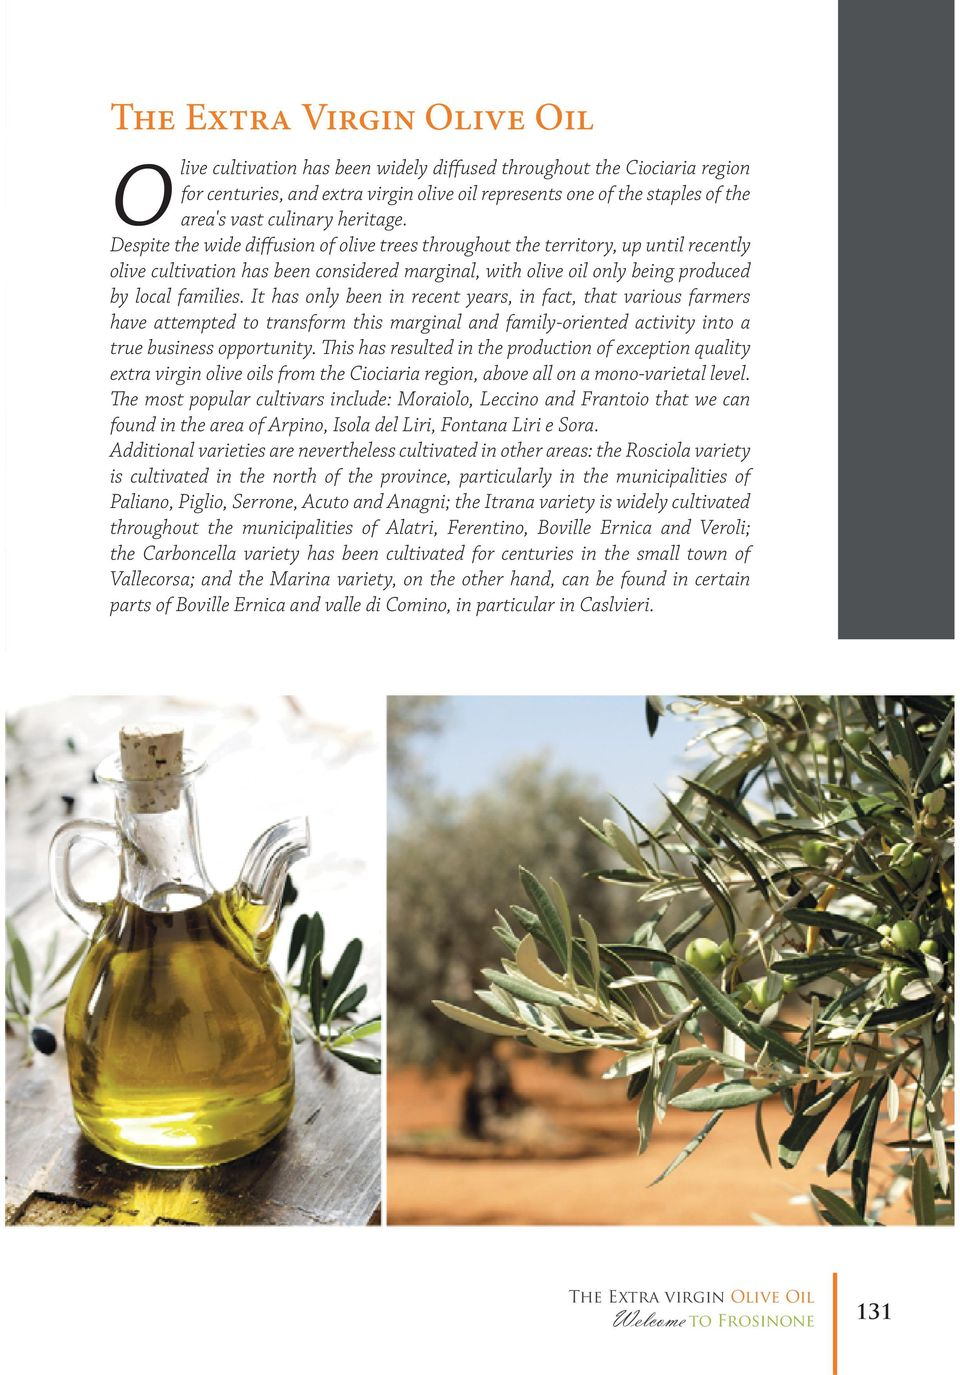 Despite the wide diffusion of olive trees throughout the territory, up until recently olive cultivation has been considered marginal, with olive oil only being produced by local families.